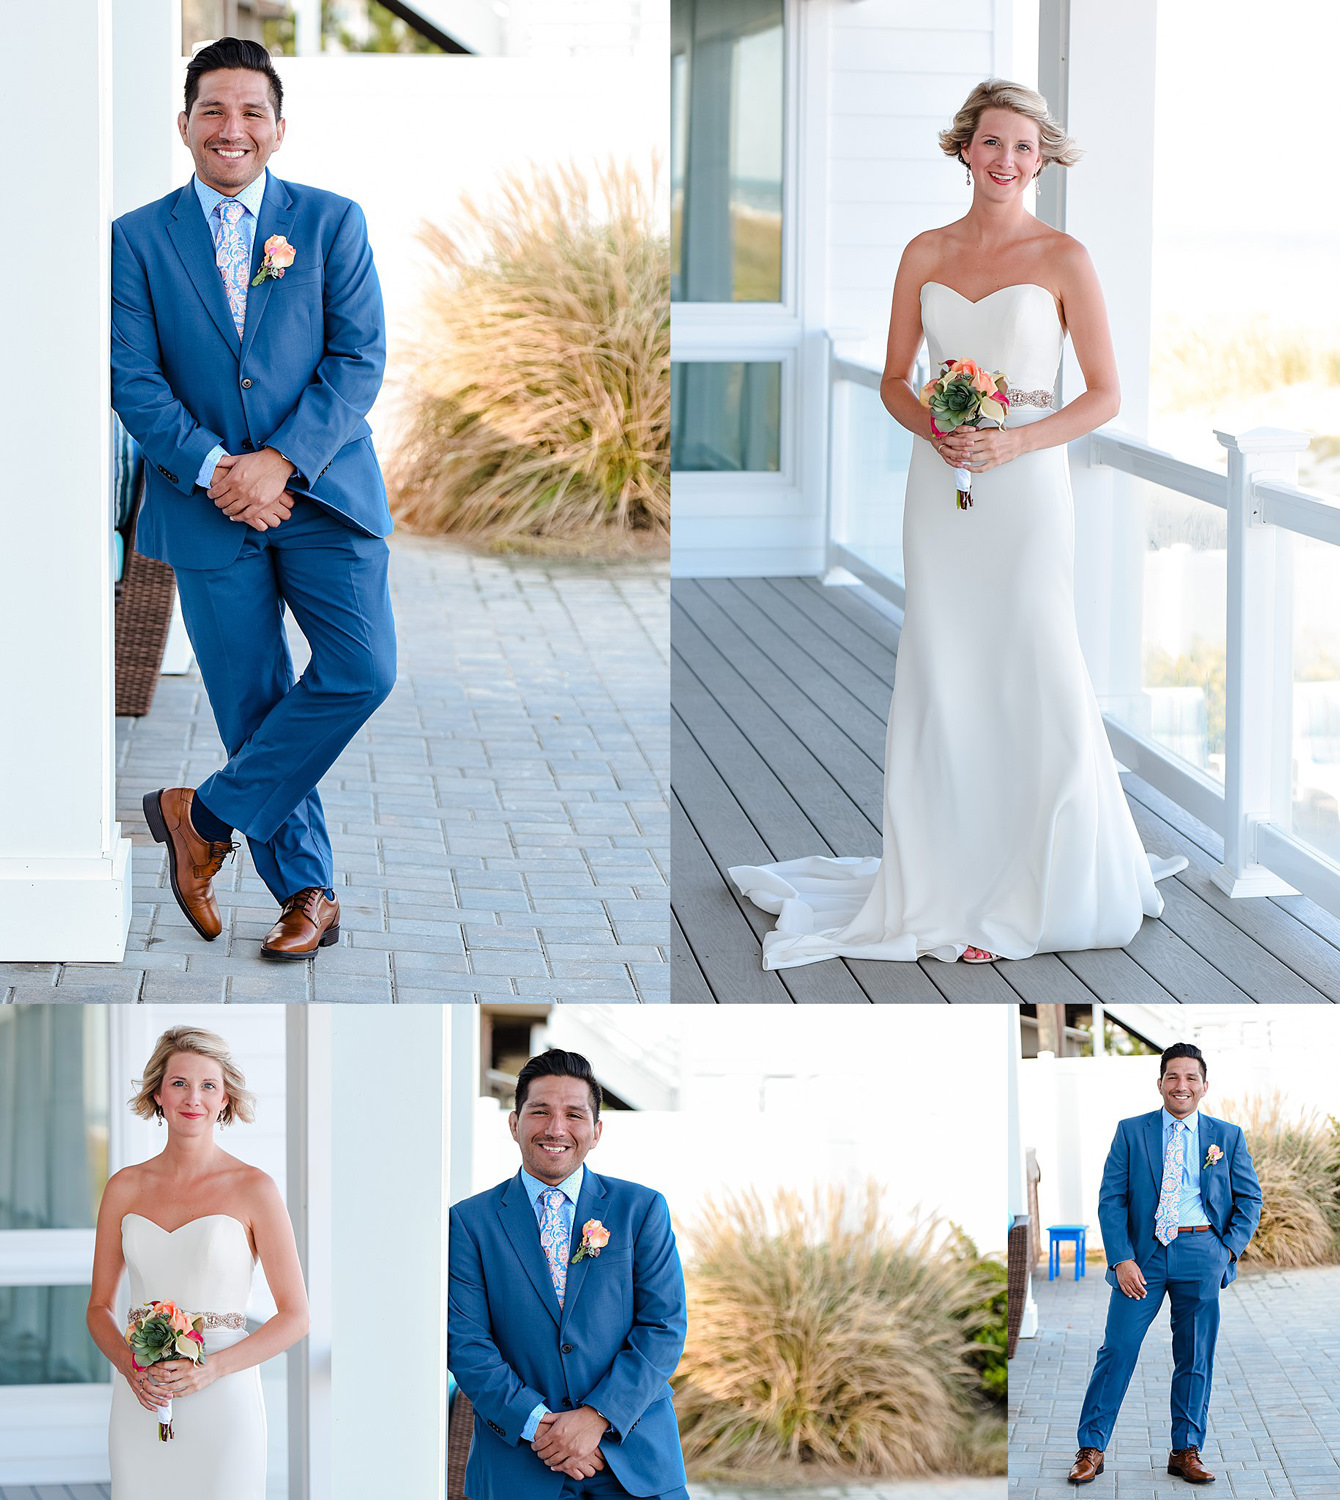 bride-and-groom-blue-horizon-beach-house-wedding-sandbridge-photographer-melissa-bliss-photography.jpg